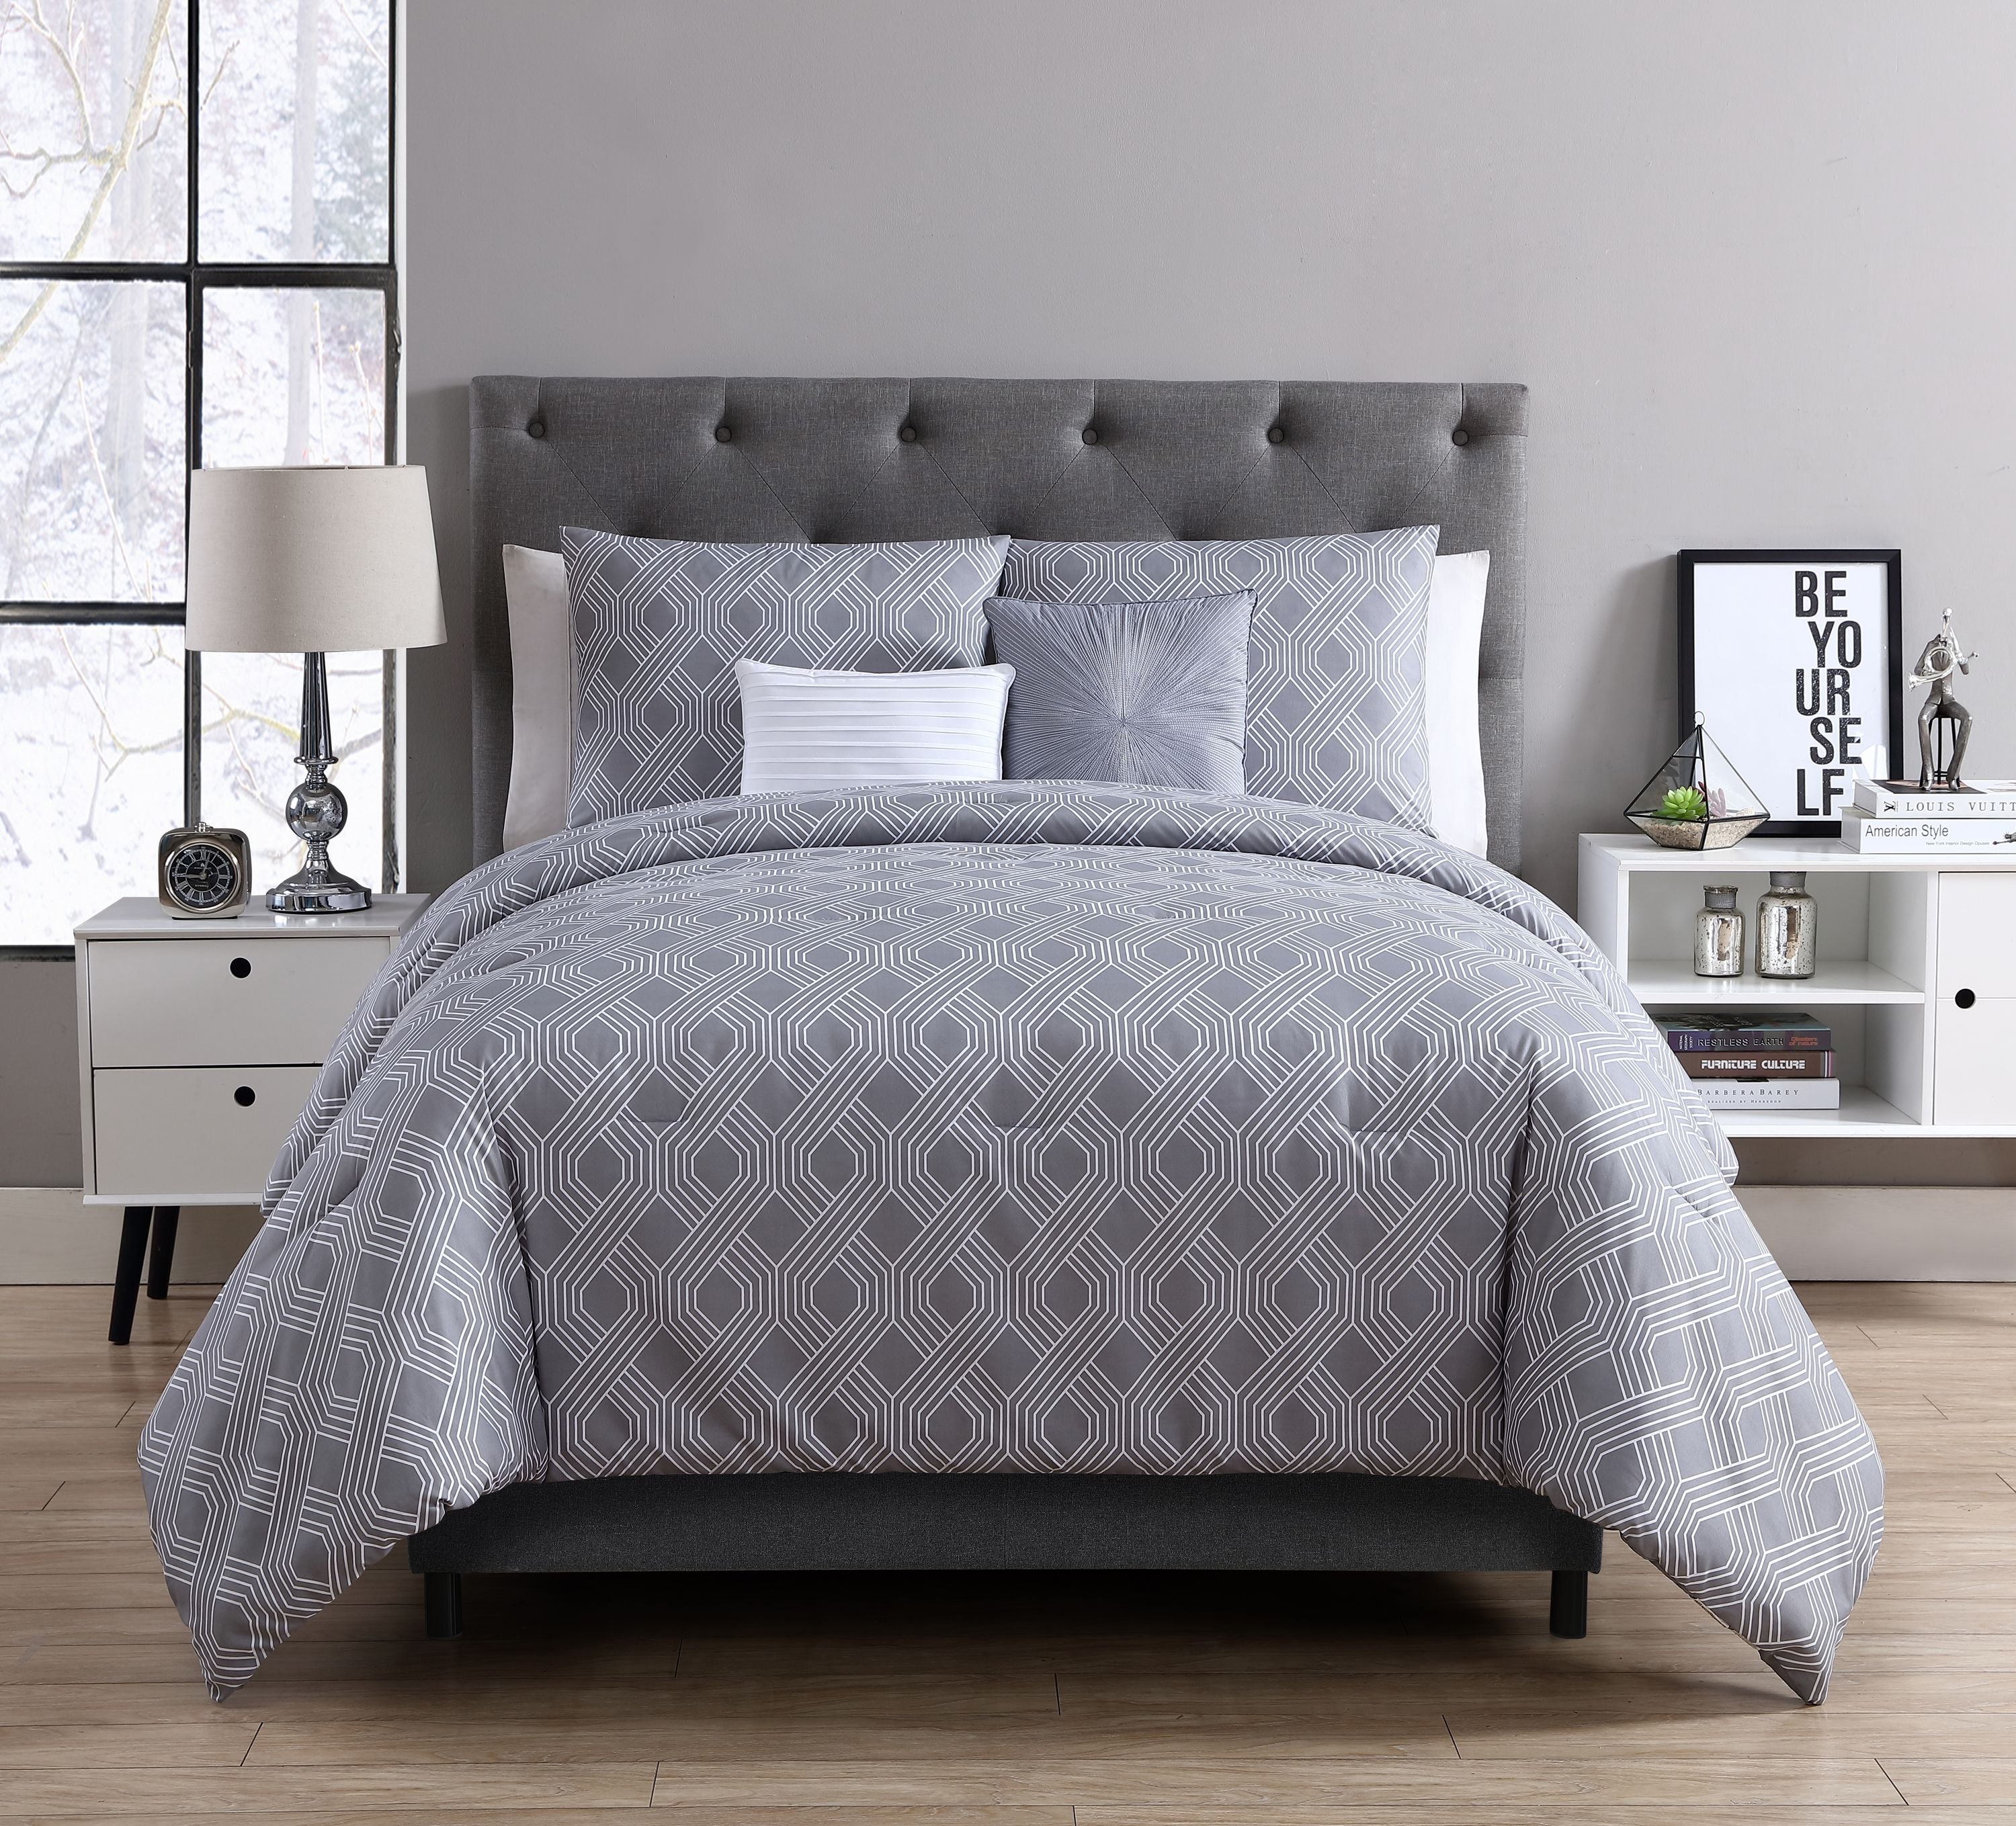 VCNY Home Eli Metallic Interlocking Geometric 4/5 Piece Bedding Comforter Set with Decorative Pillows Included, Multiple Colors and Sizes Available